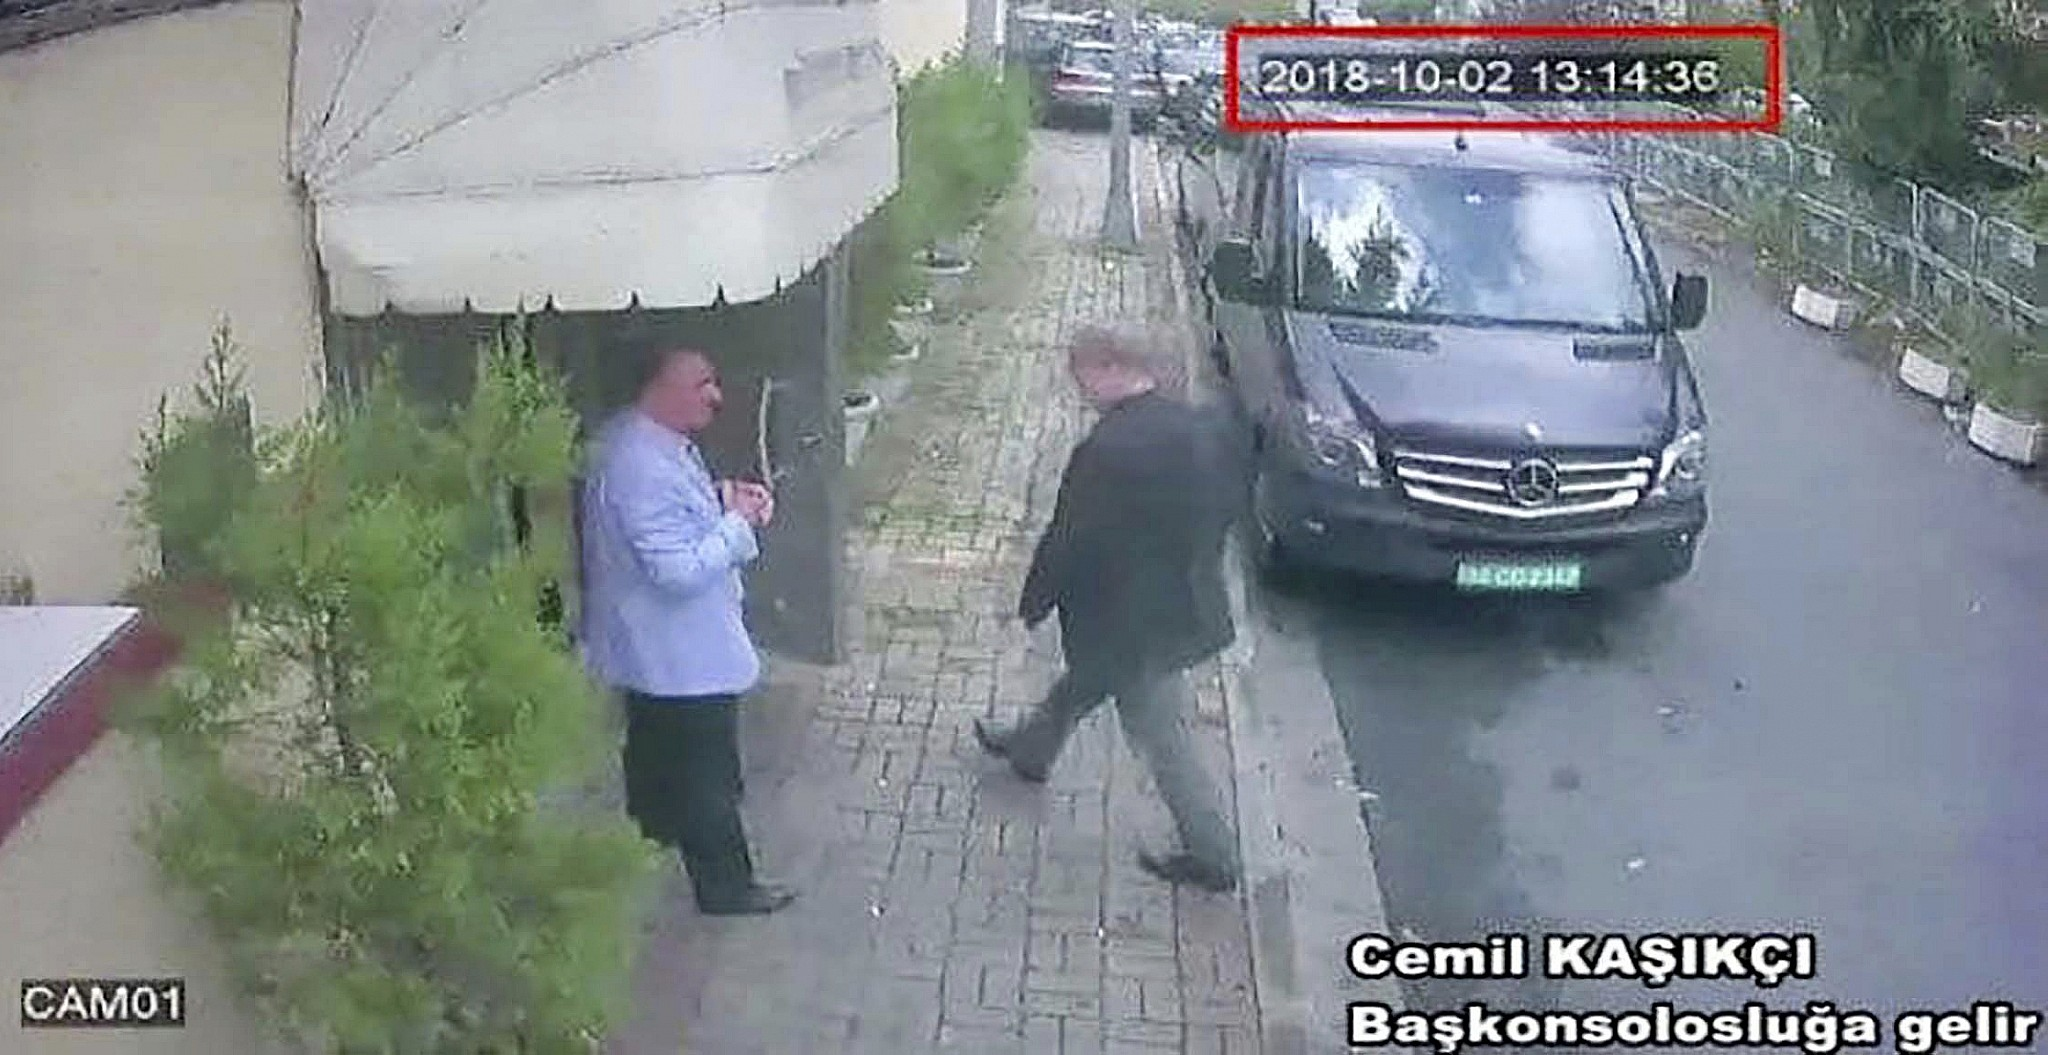 Without evidence: The media's failings in response to Khashoggi's disappearance